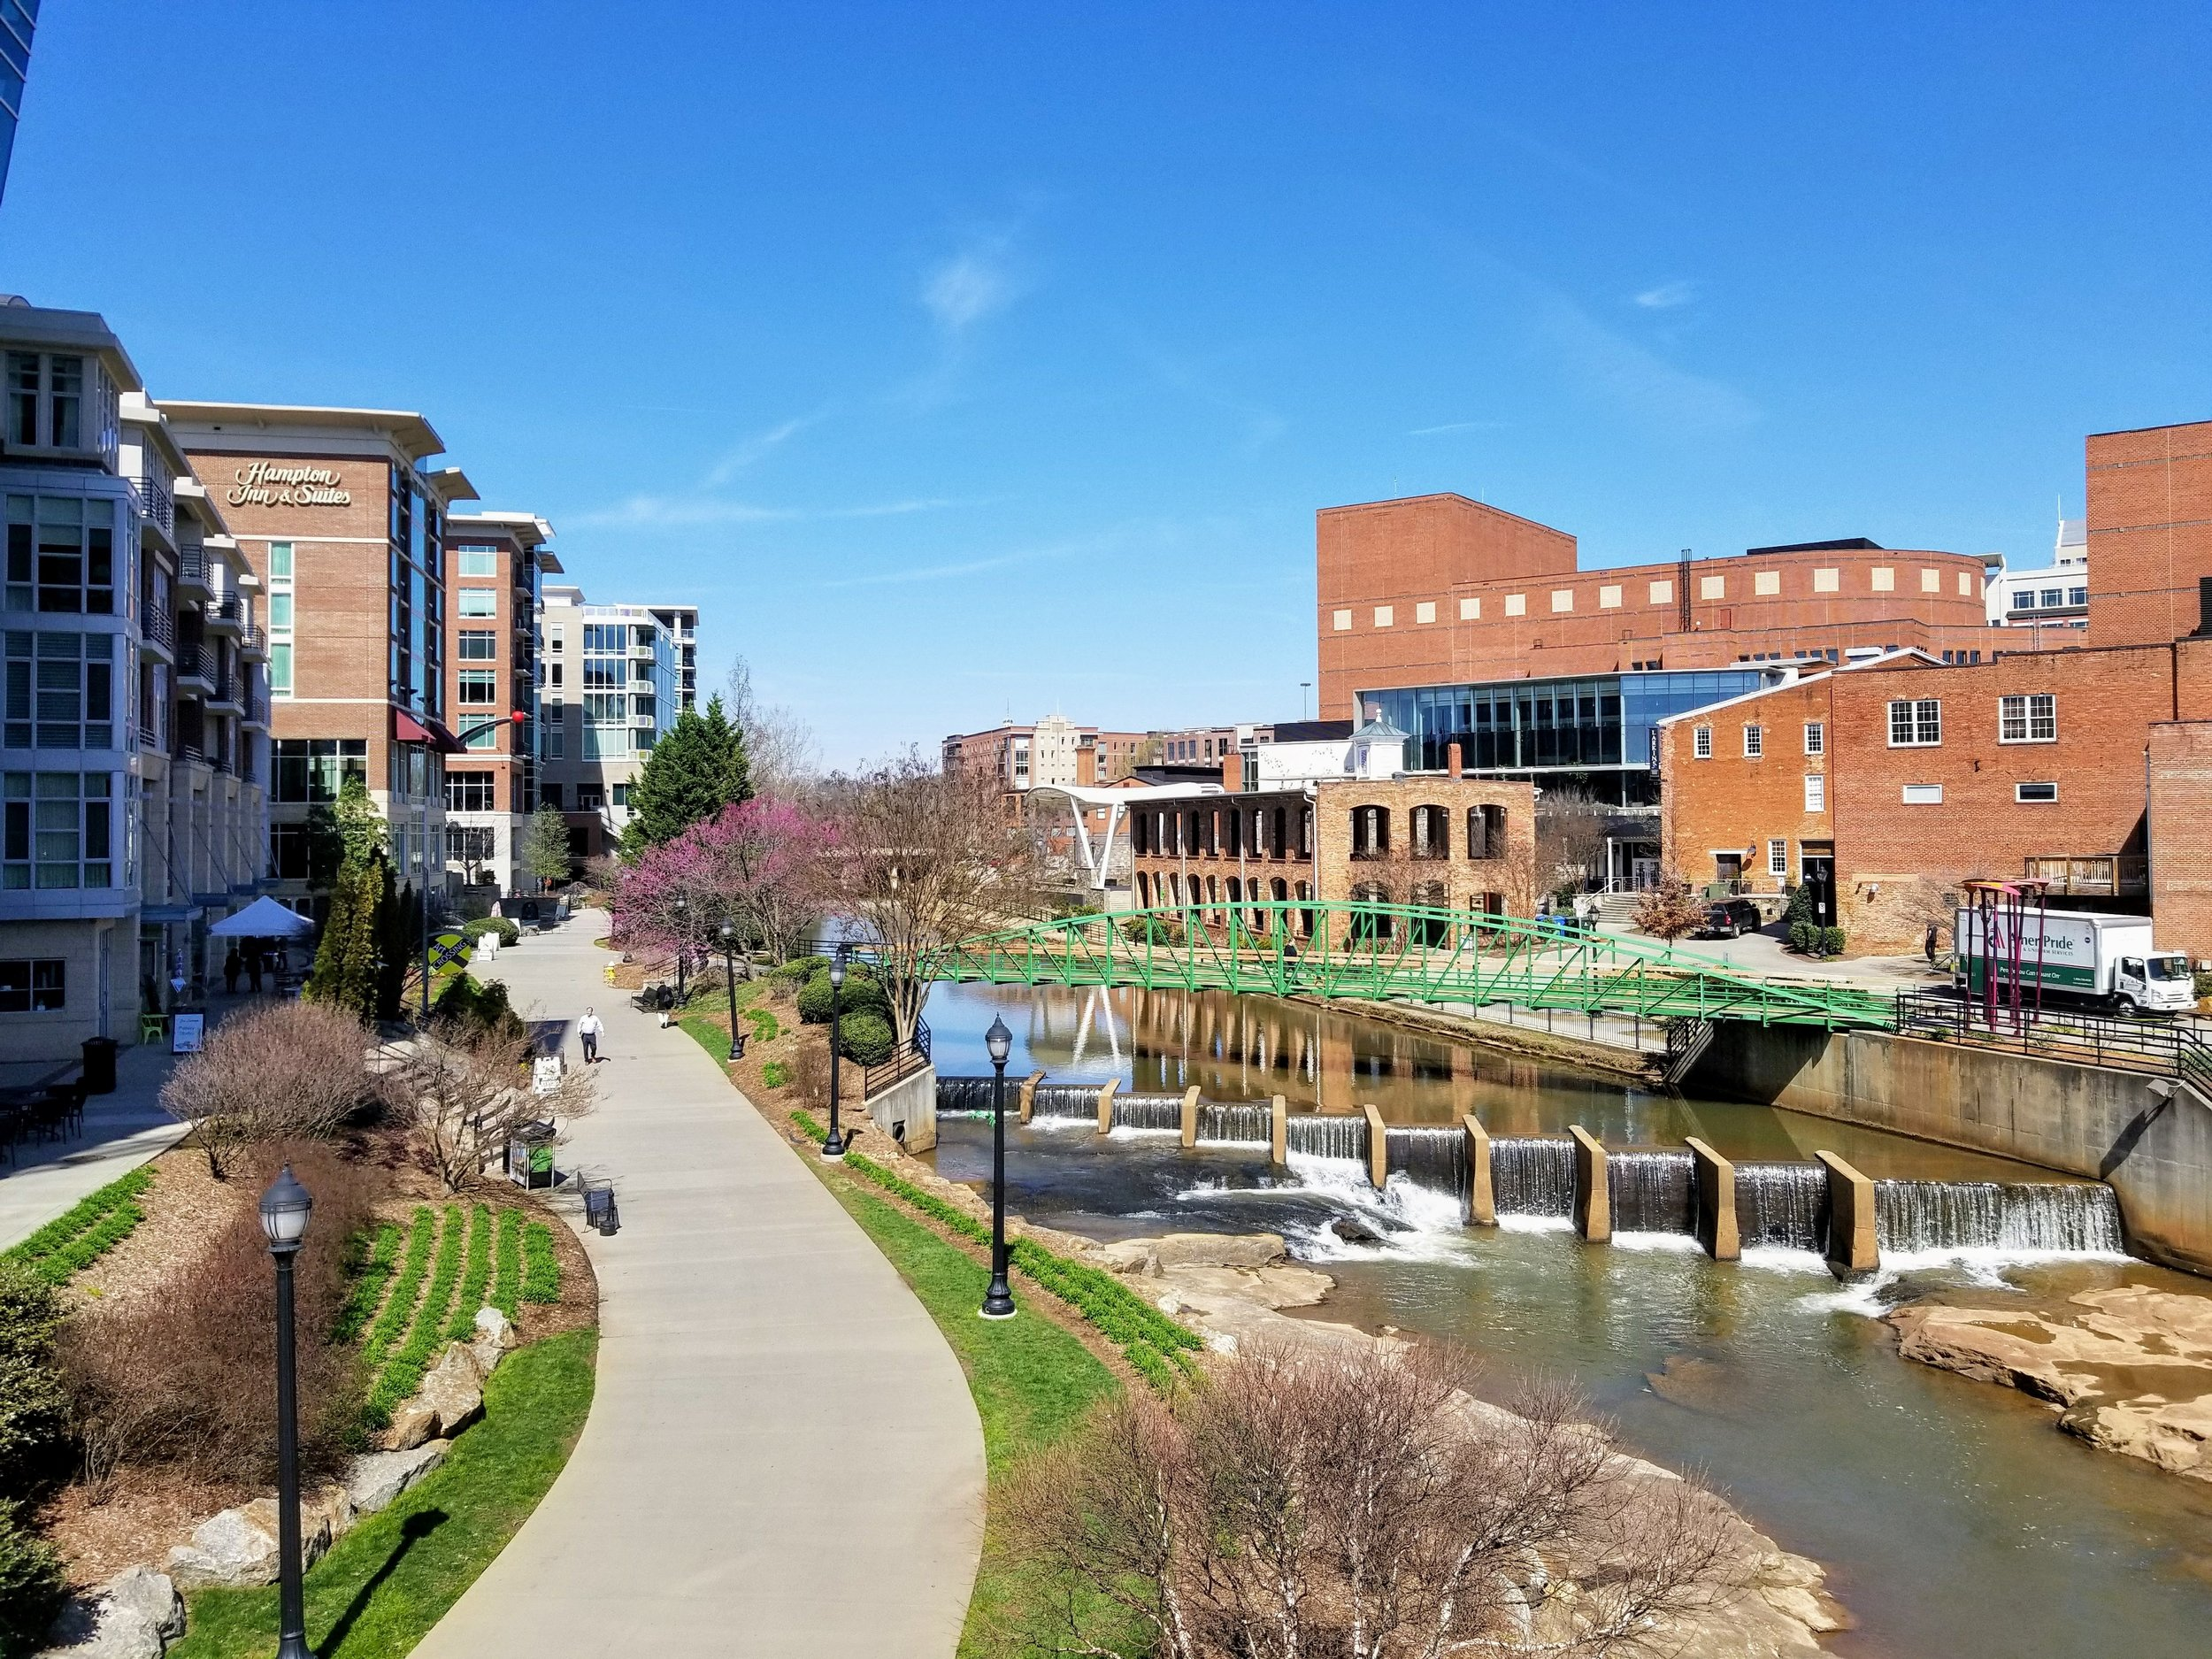 Downtown Greenville with Hampton Inn and Suites seen on the left and the awesome Swamp Rabbit Trail as it follows along the Reedy River.